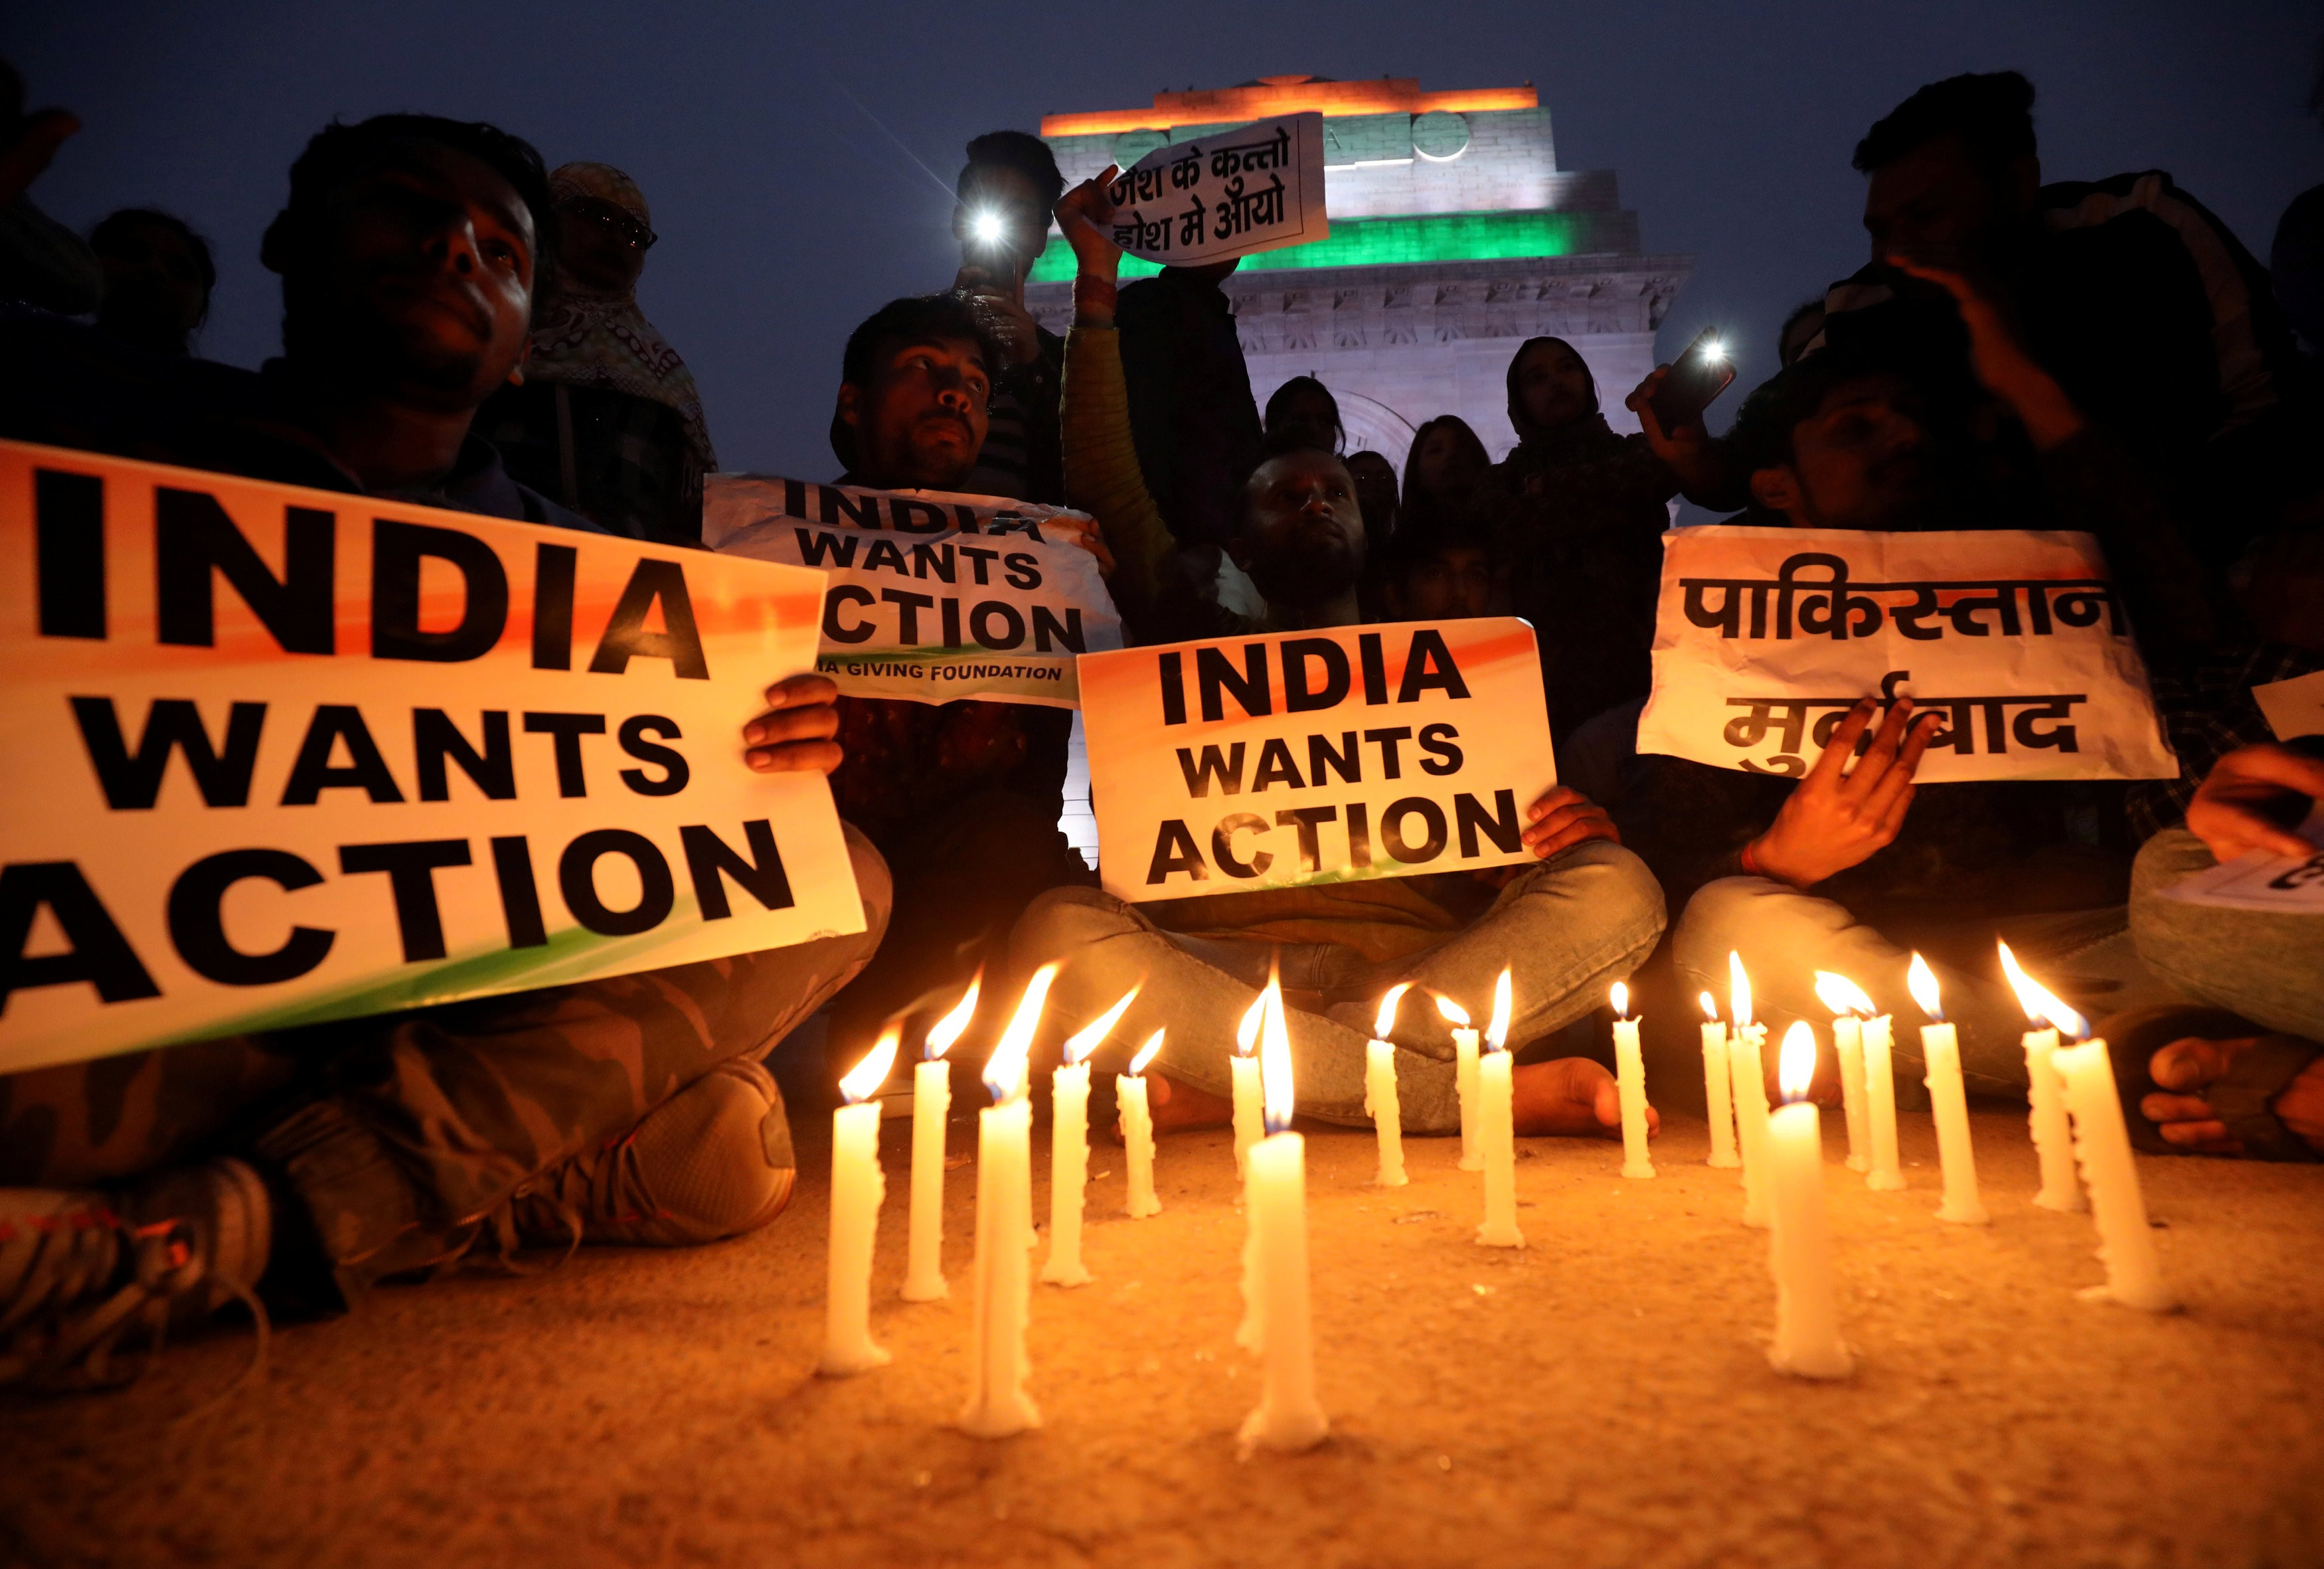 Pulwama attacks: how India can respond to Pakistan-based